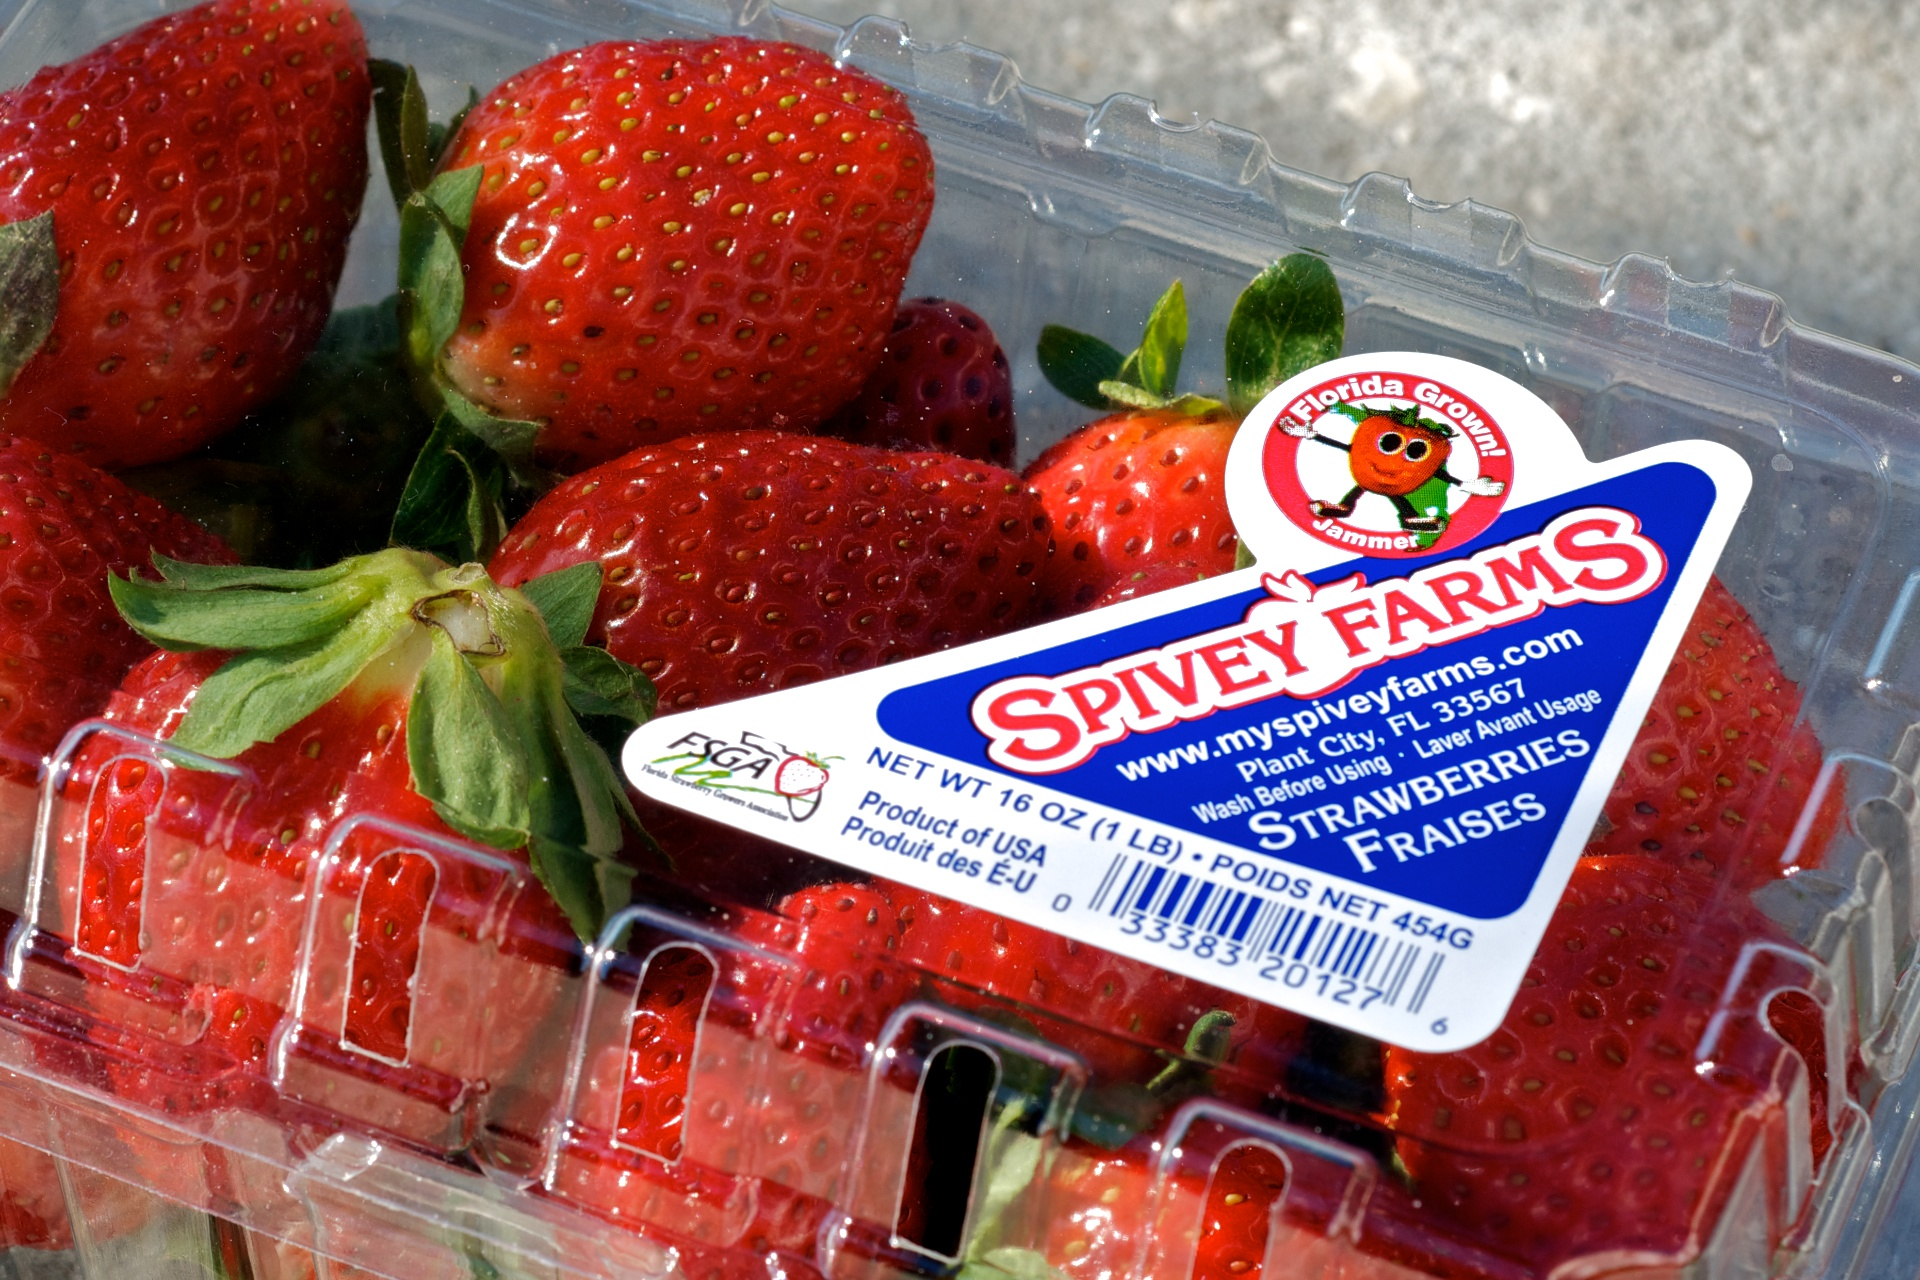 view larger image spivey farms strawberries featuring jammer